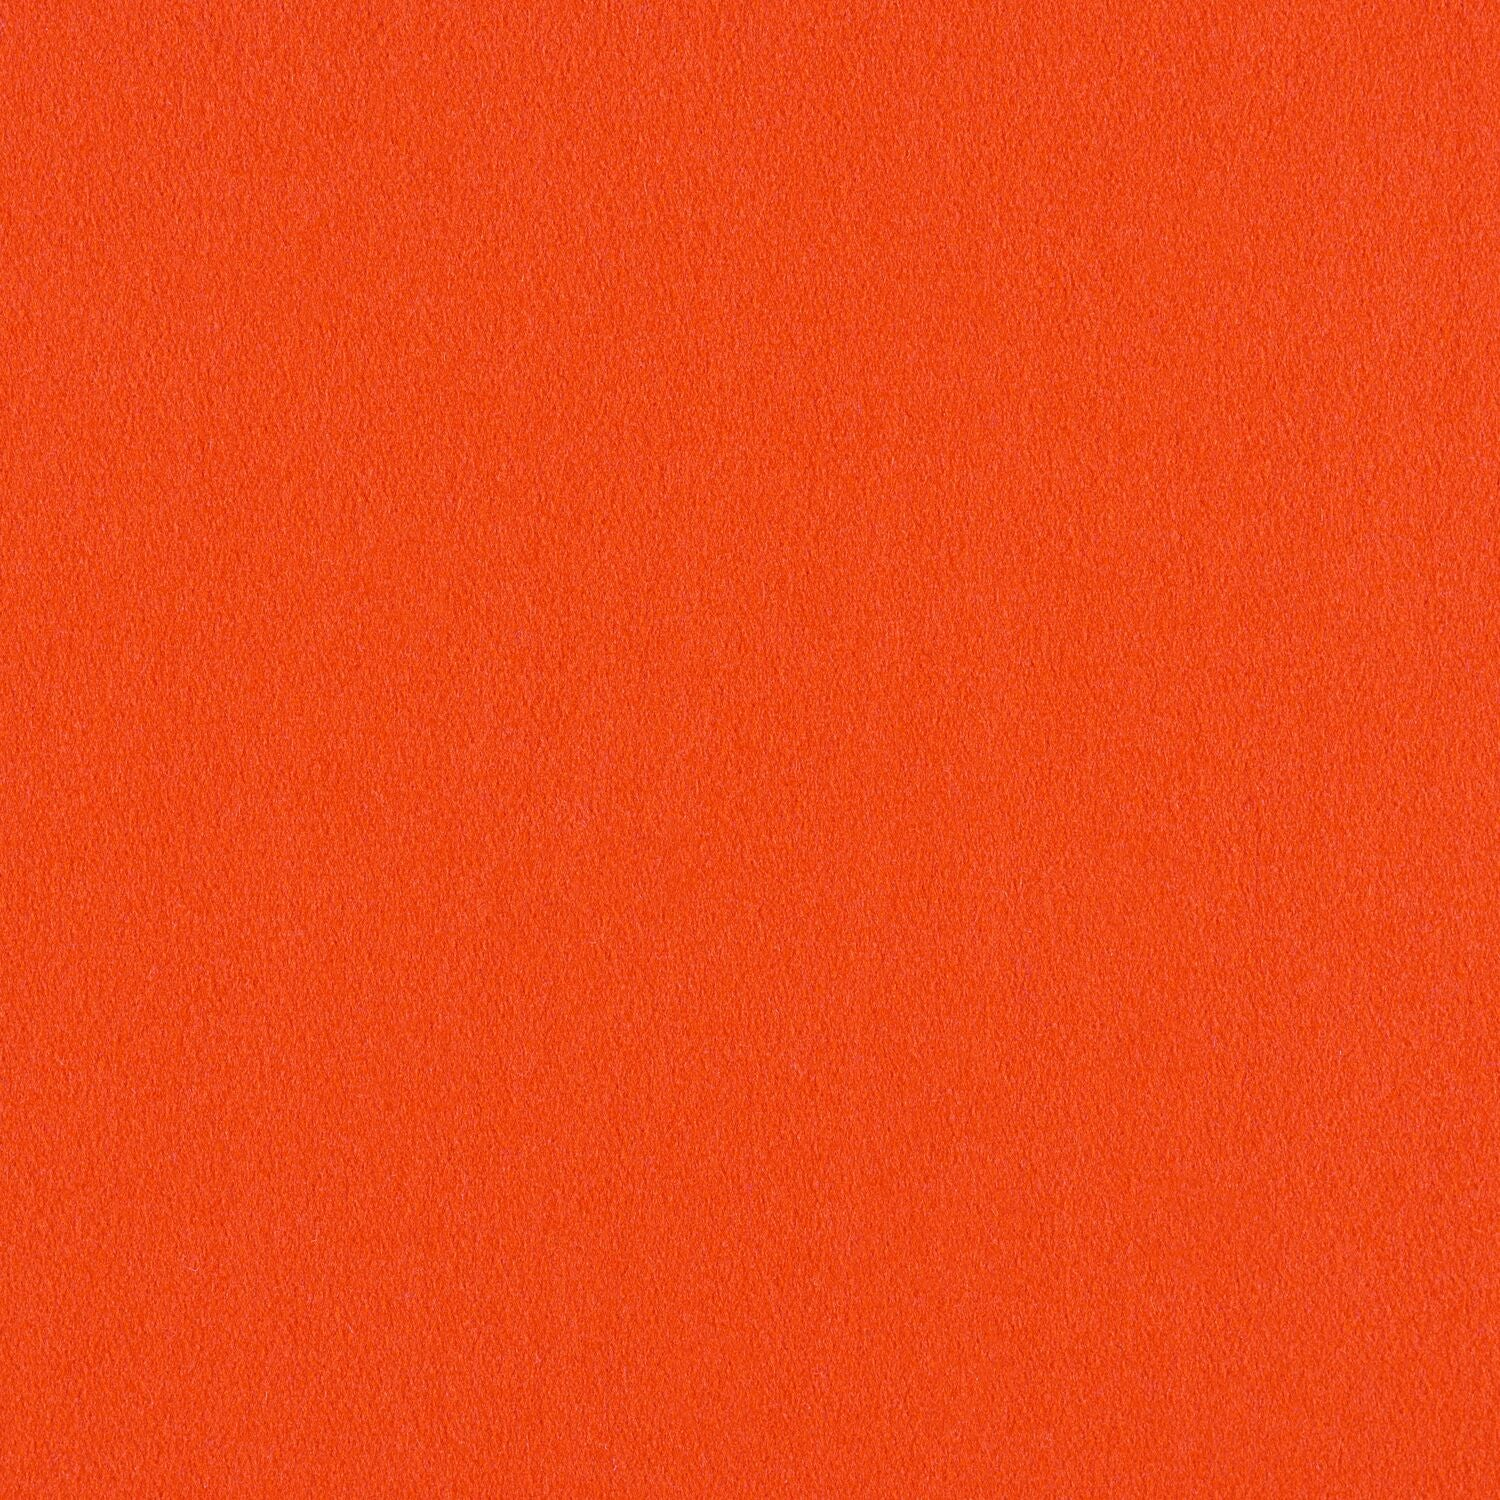 Construct - Cadmium Orange - 4079 - 05